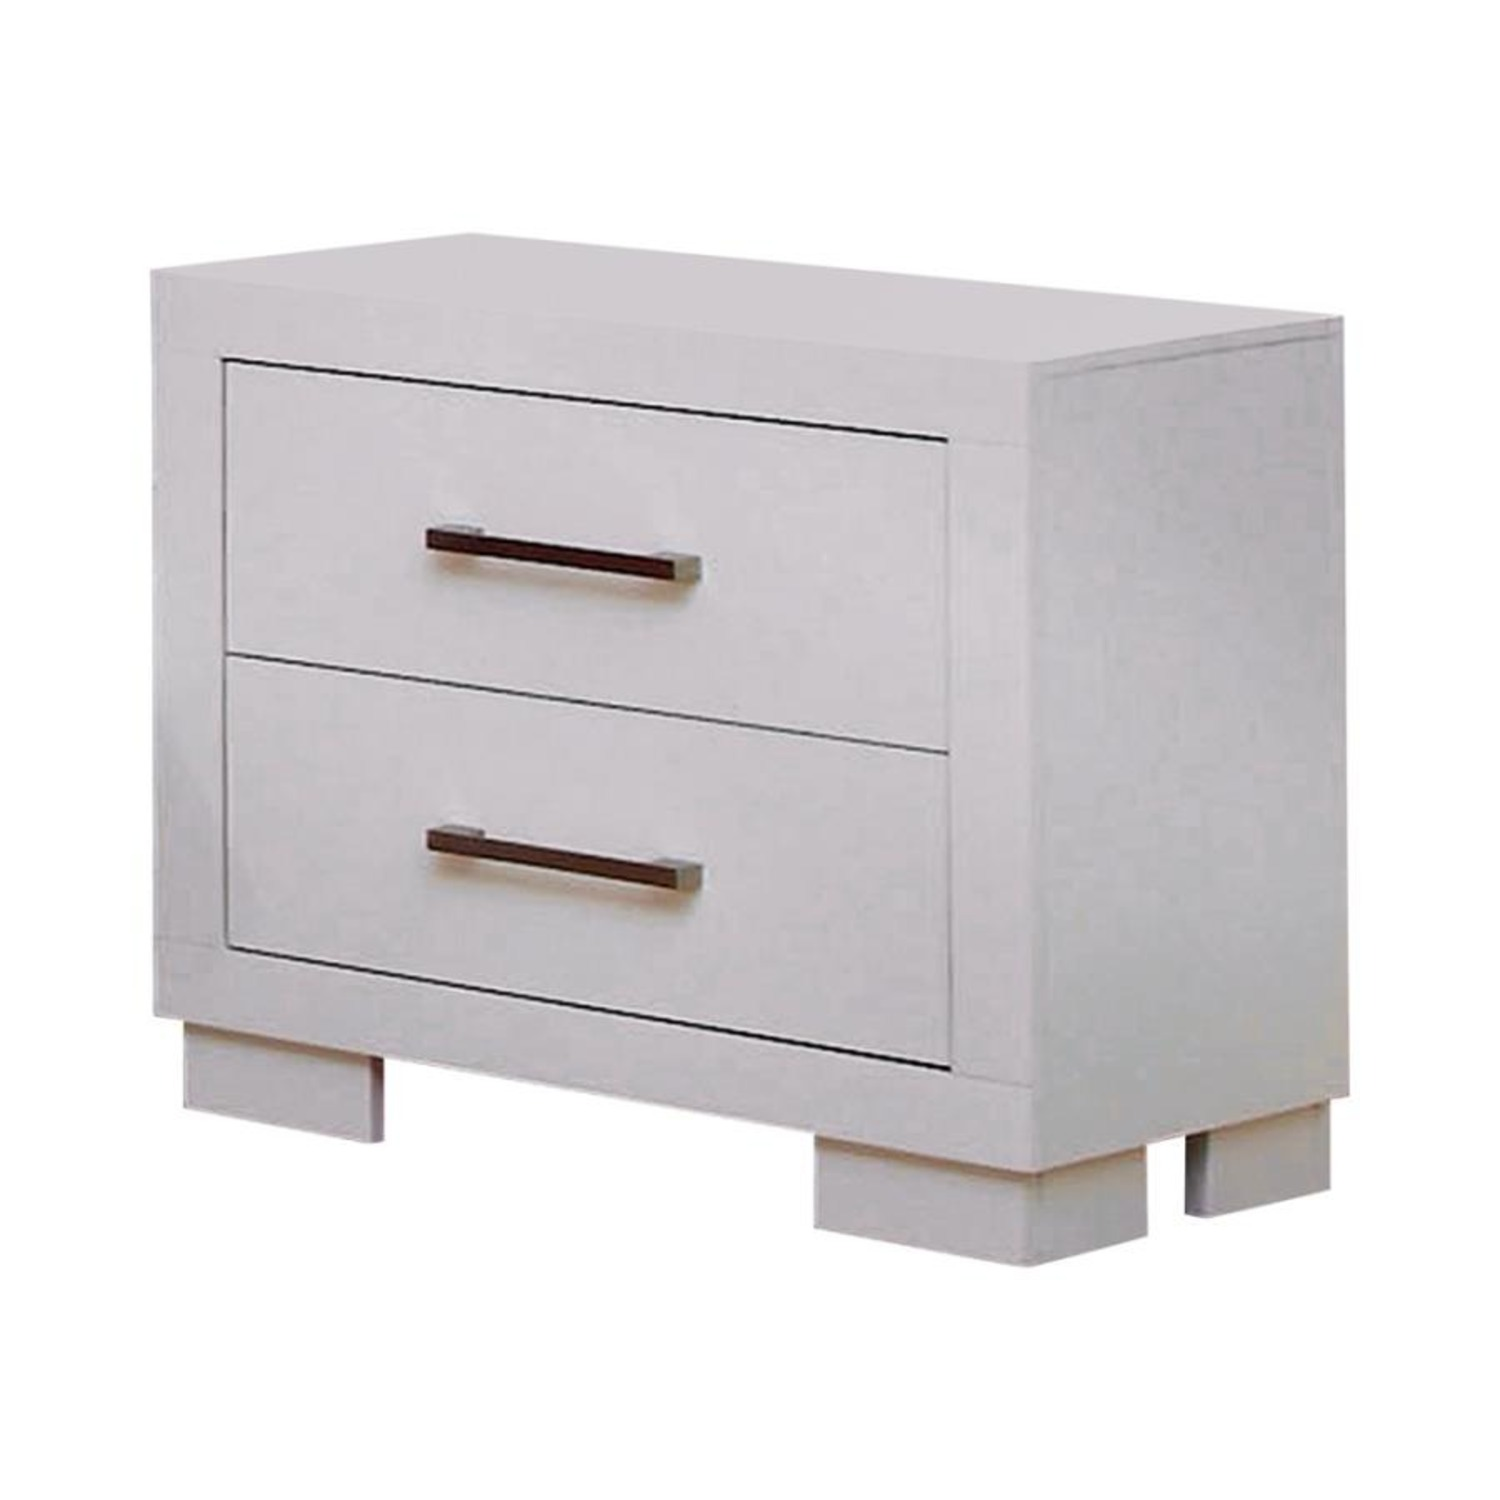 Minimalist Nightstand In White Finish - image-0